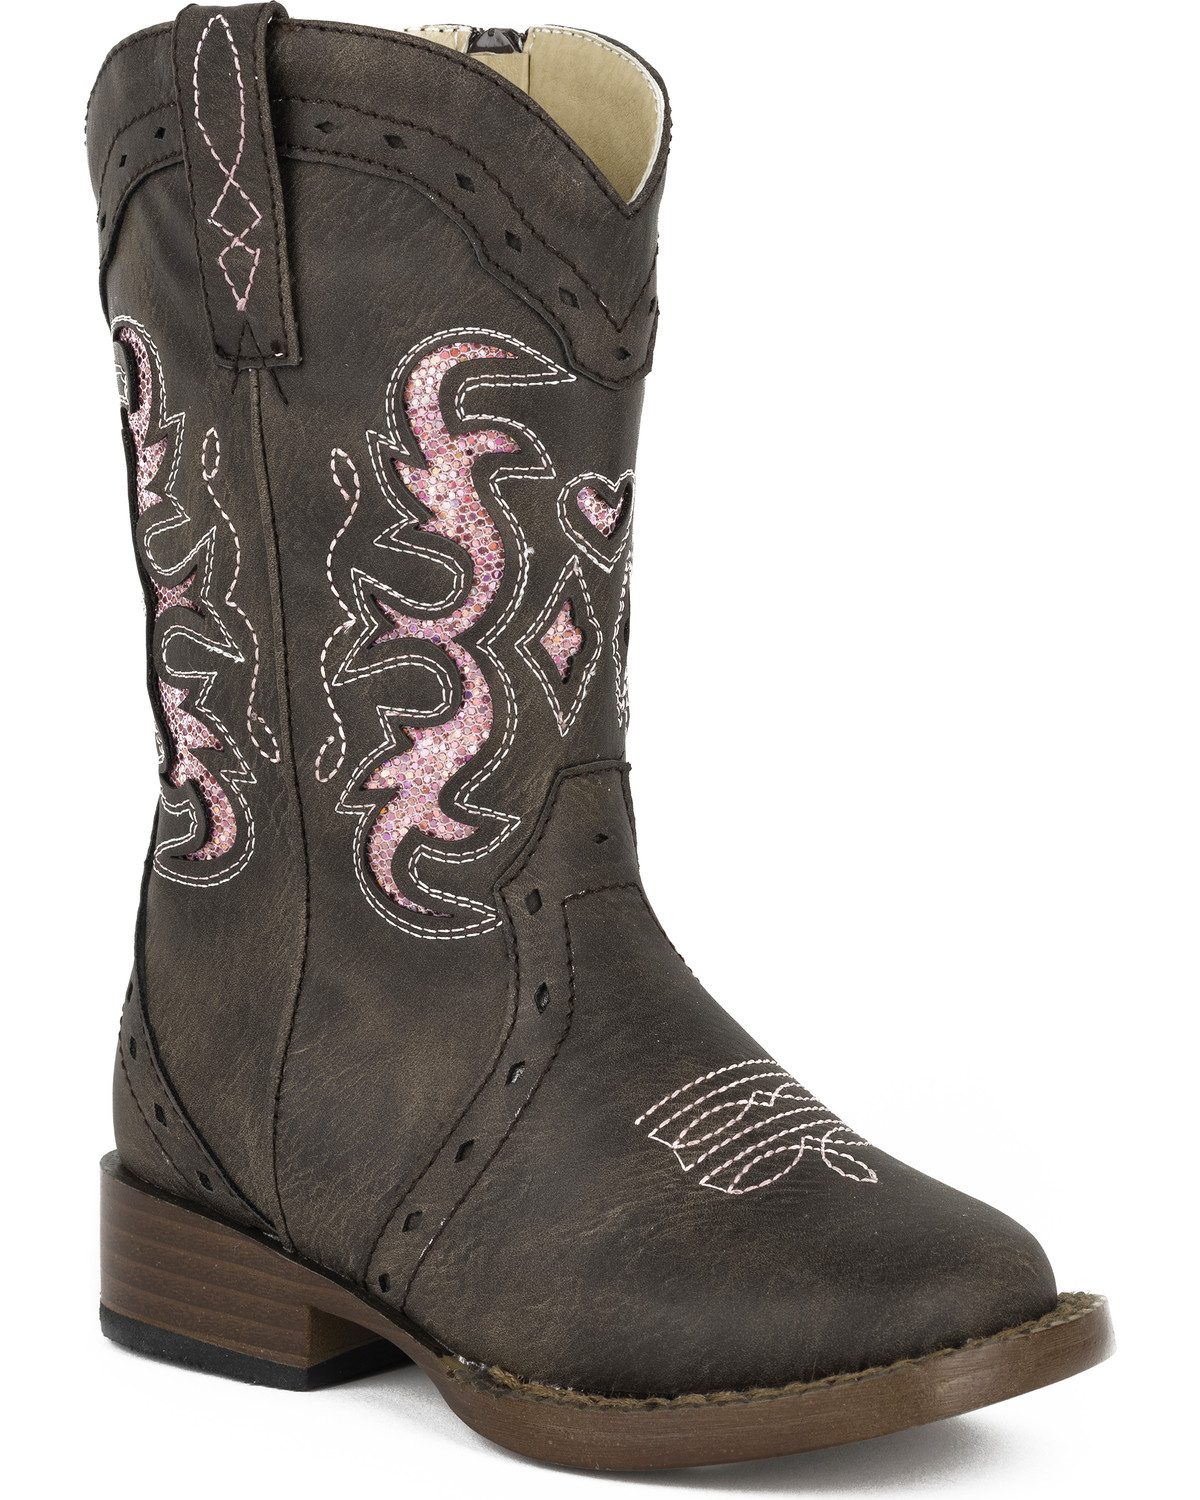 462175bbea7 Roper Toddler Girls' Lexi Glitter Cowgirl Boots - Square Toe